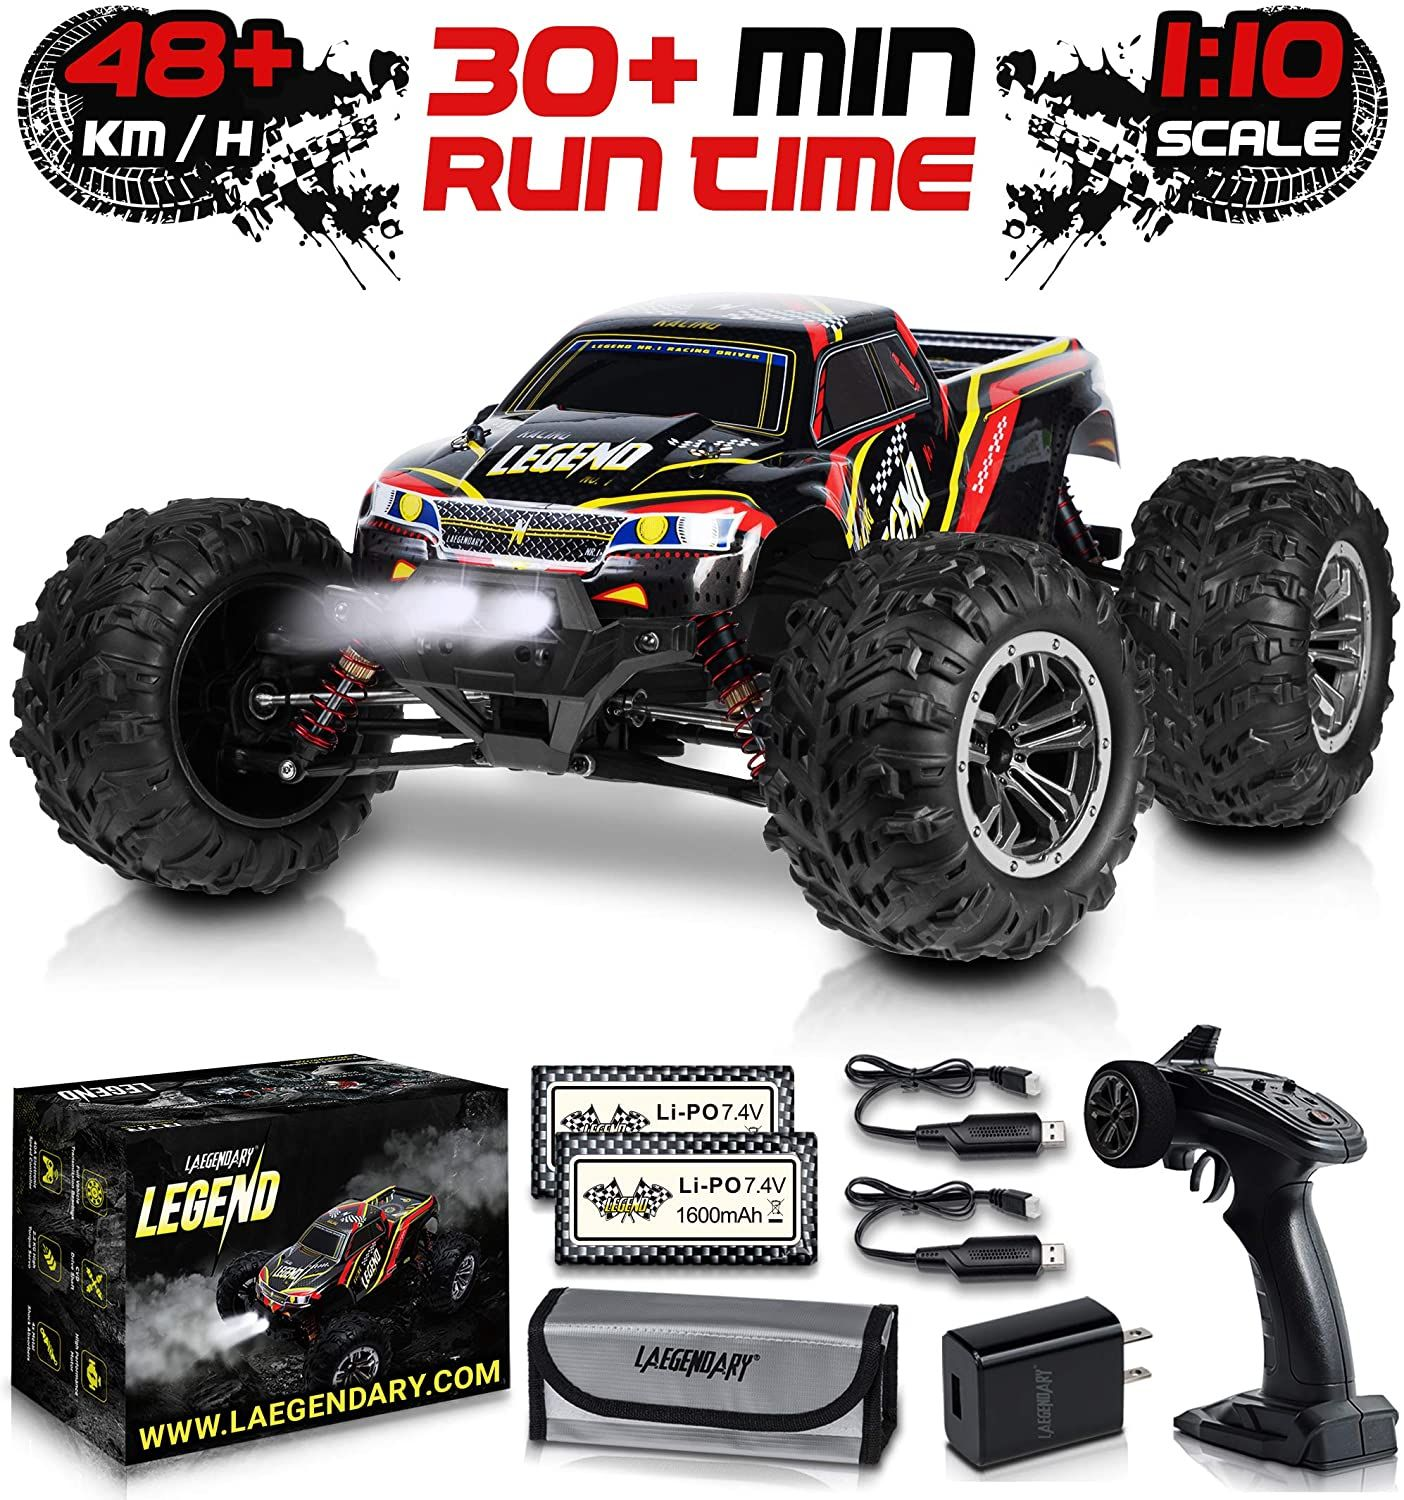 1 10 Scale Large Rc Cars 48 Kmh Speed Boys Remote Control Car 4x4 Off Road Monster Truck Electric In 2020 Nitro Rc Cars Gas Powered Rc Cars Remote Control Cars